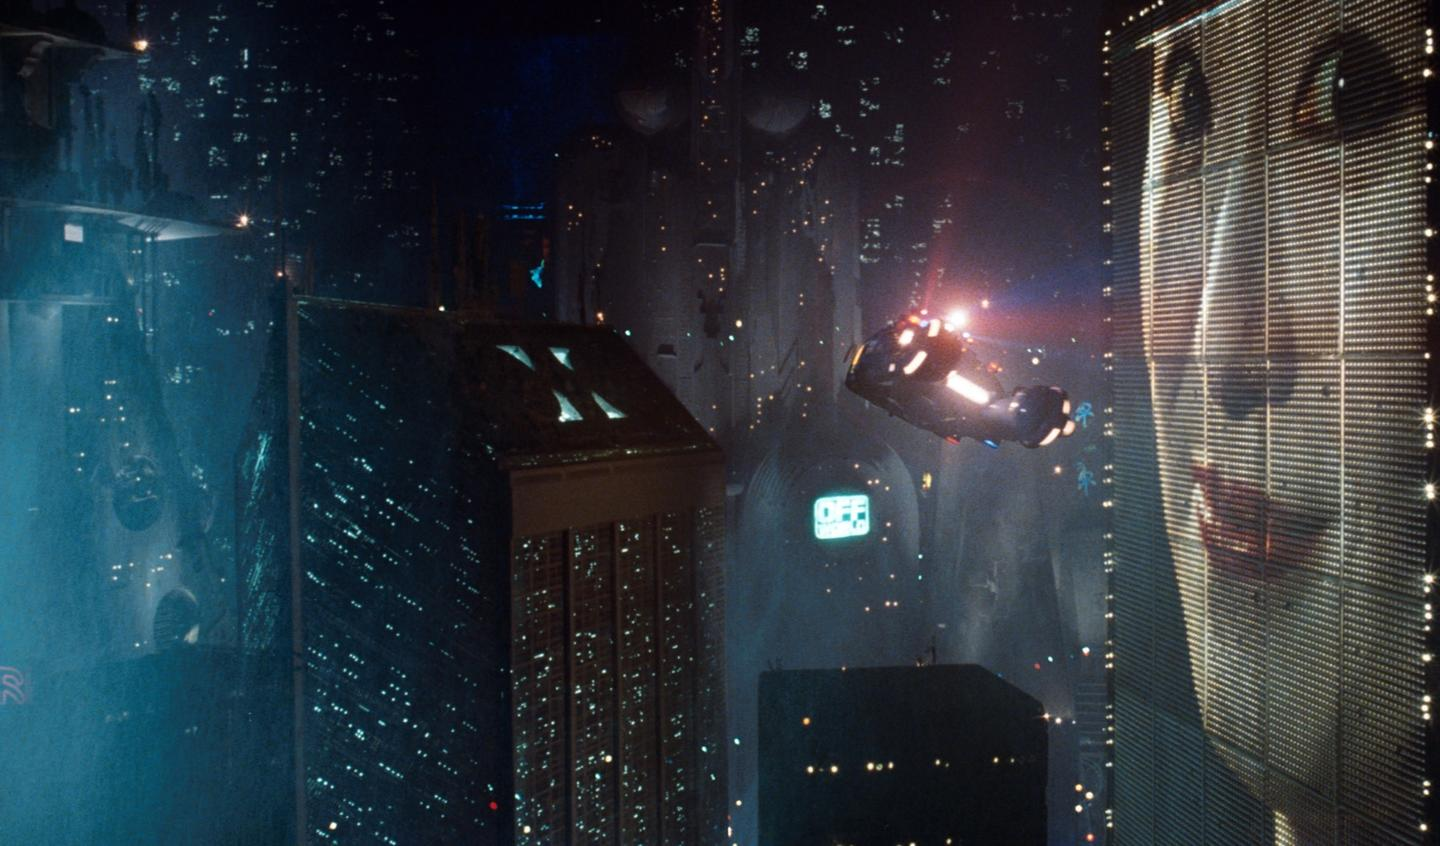 The Blade Runner sequel will be accompanied by VR content exclusive to Oculus